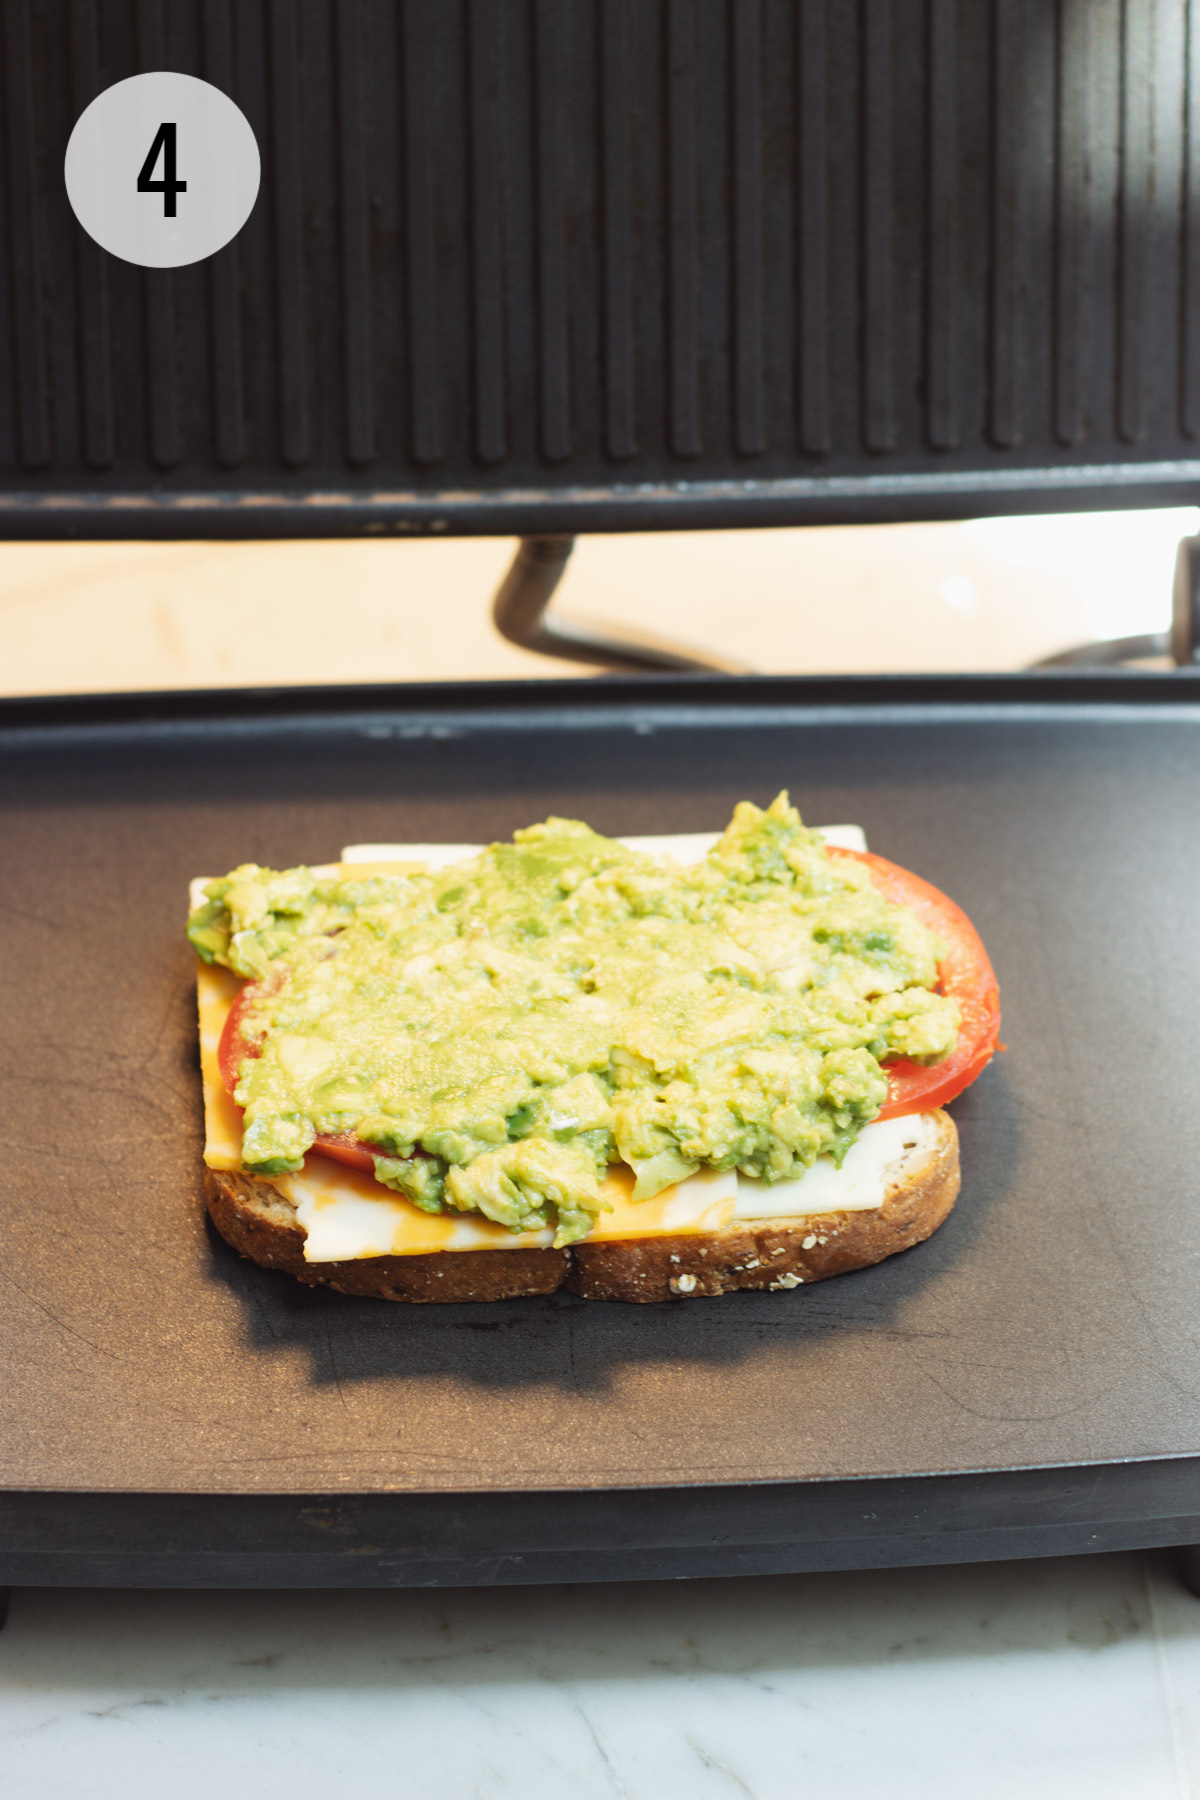 One slice of bread topped with cheese, tomato and avocado on a panini maker.